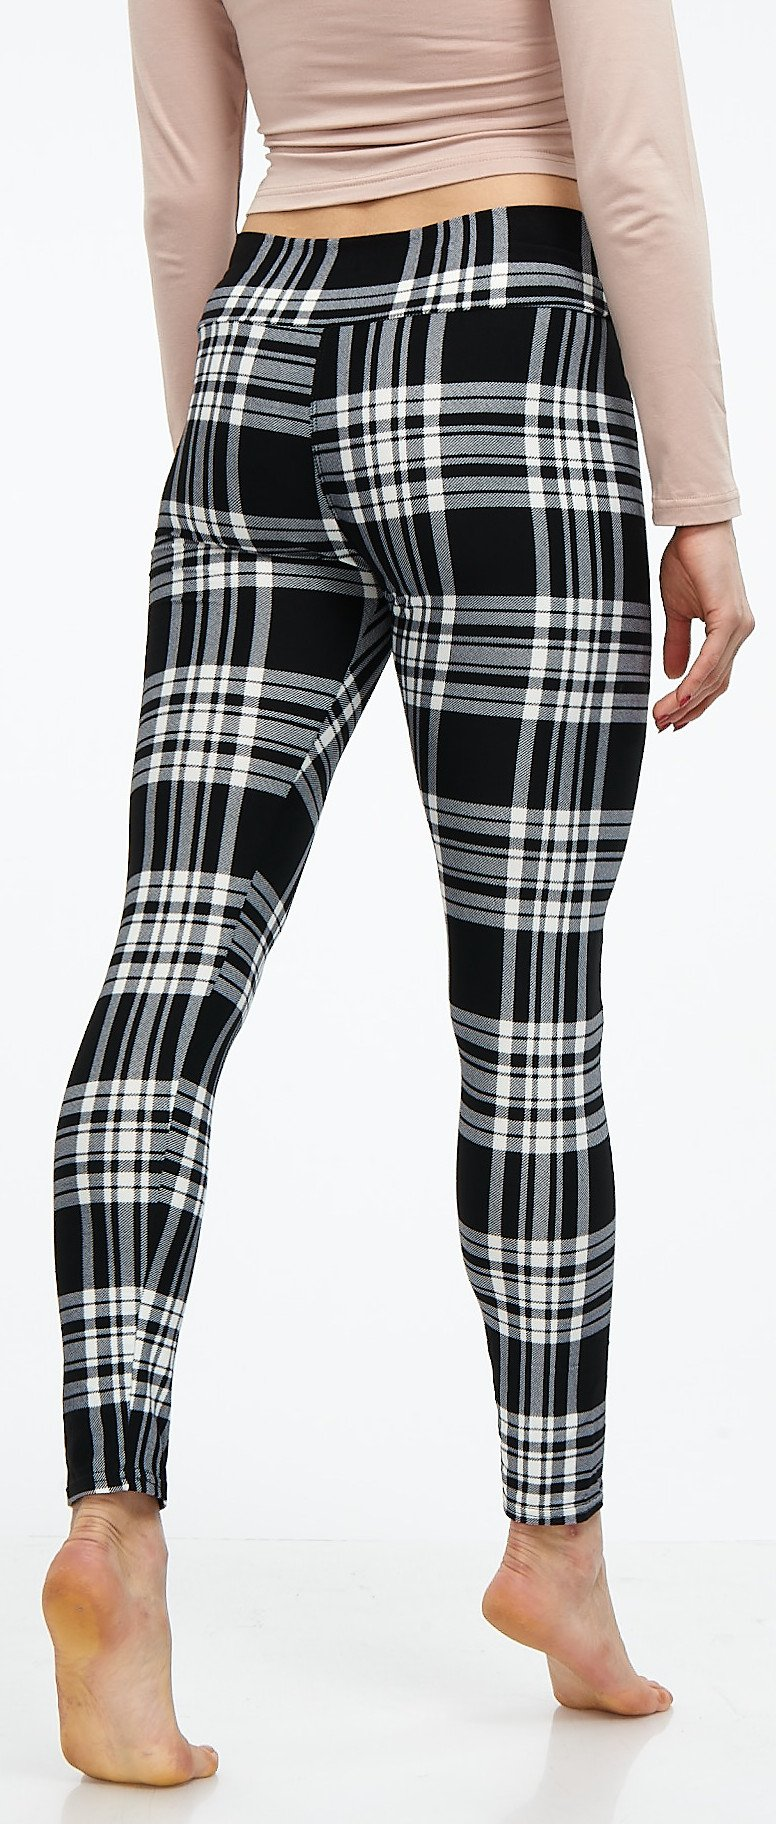 LMB Lush Moda Extra Soft Leggings with Designs- Variety of Prints Yoga Waist - 769YF Black White Plaid B5 by LMB (Image #6)